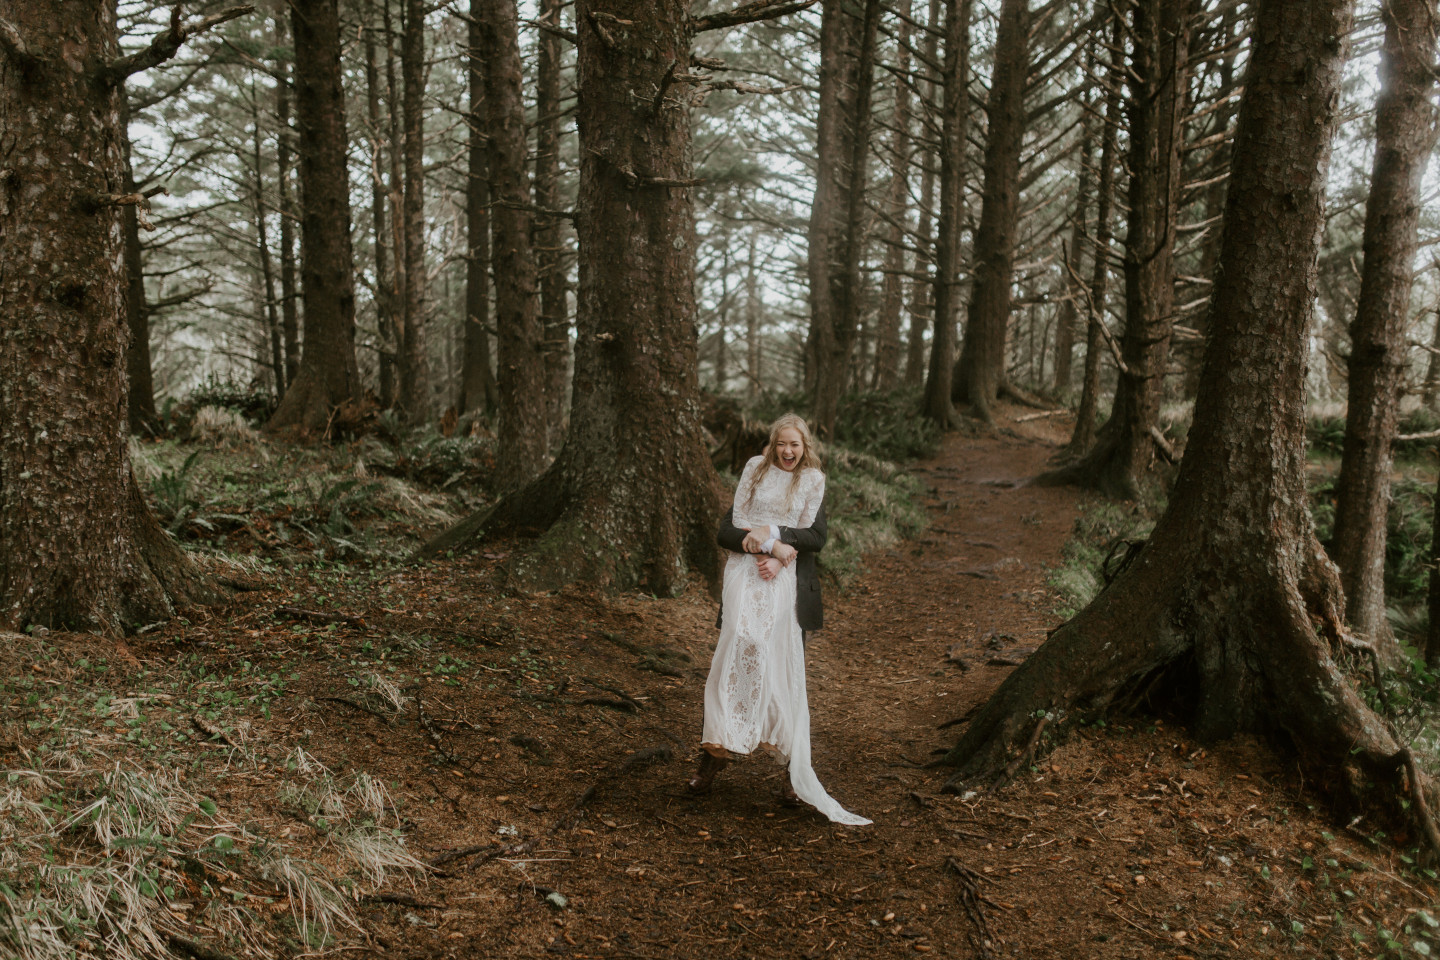 Grant lifts Hannah up during their Oregon coast elopement. Wedding photography in Portland Oregon by Sienna Plus Josh.